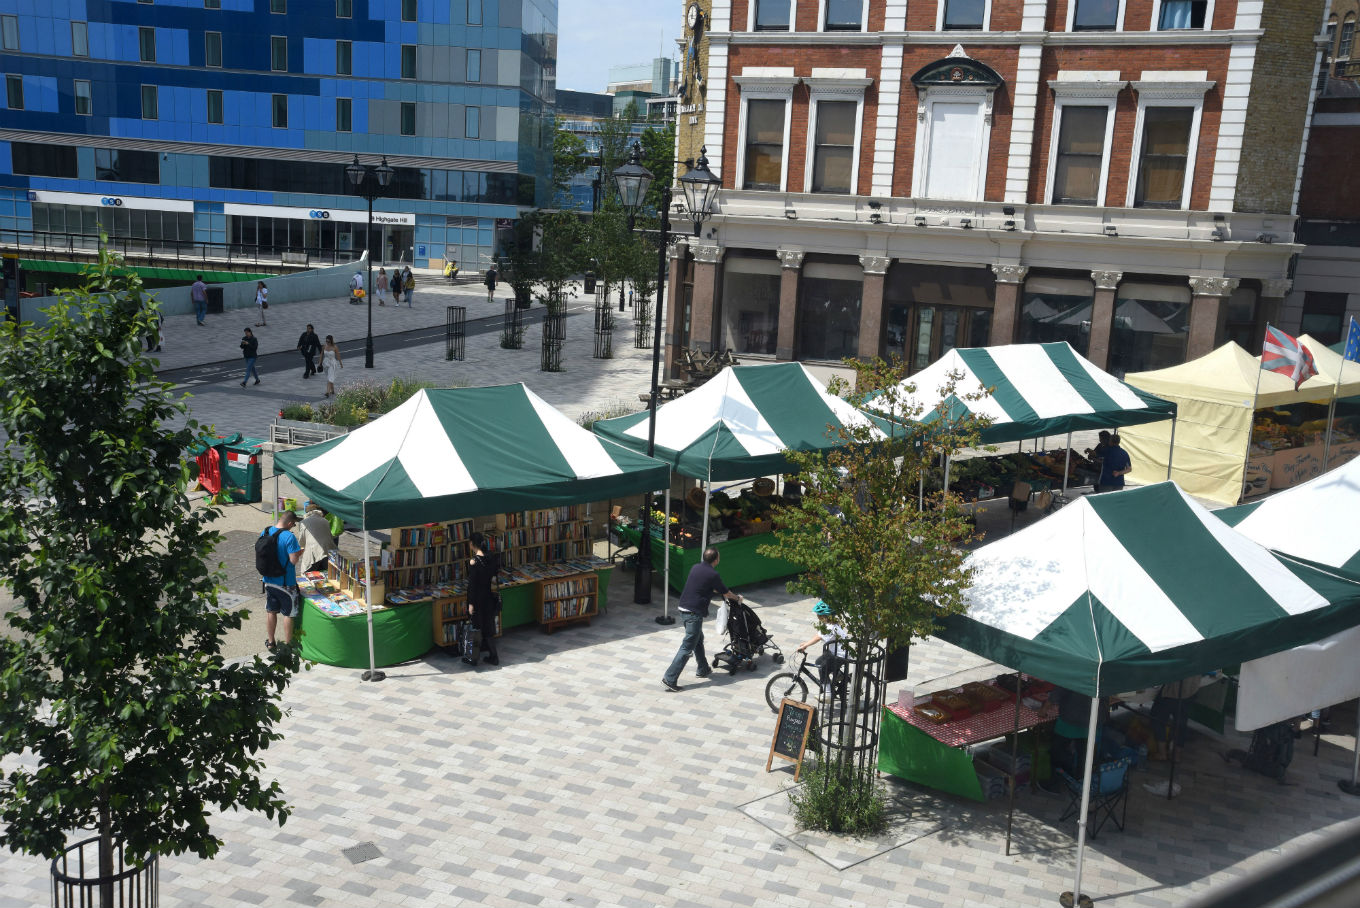 Archway Market tents in Navigator Square